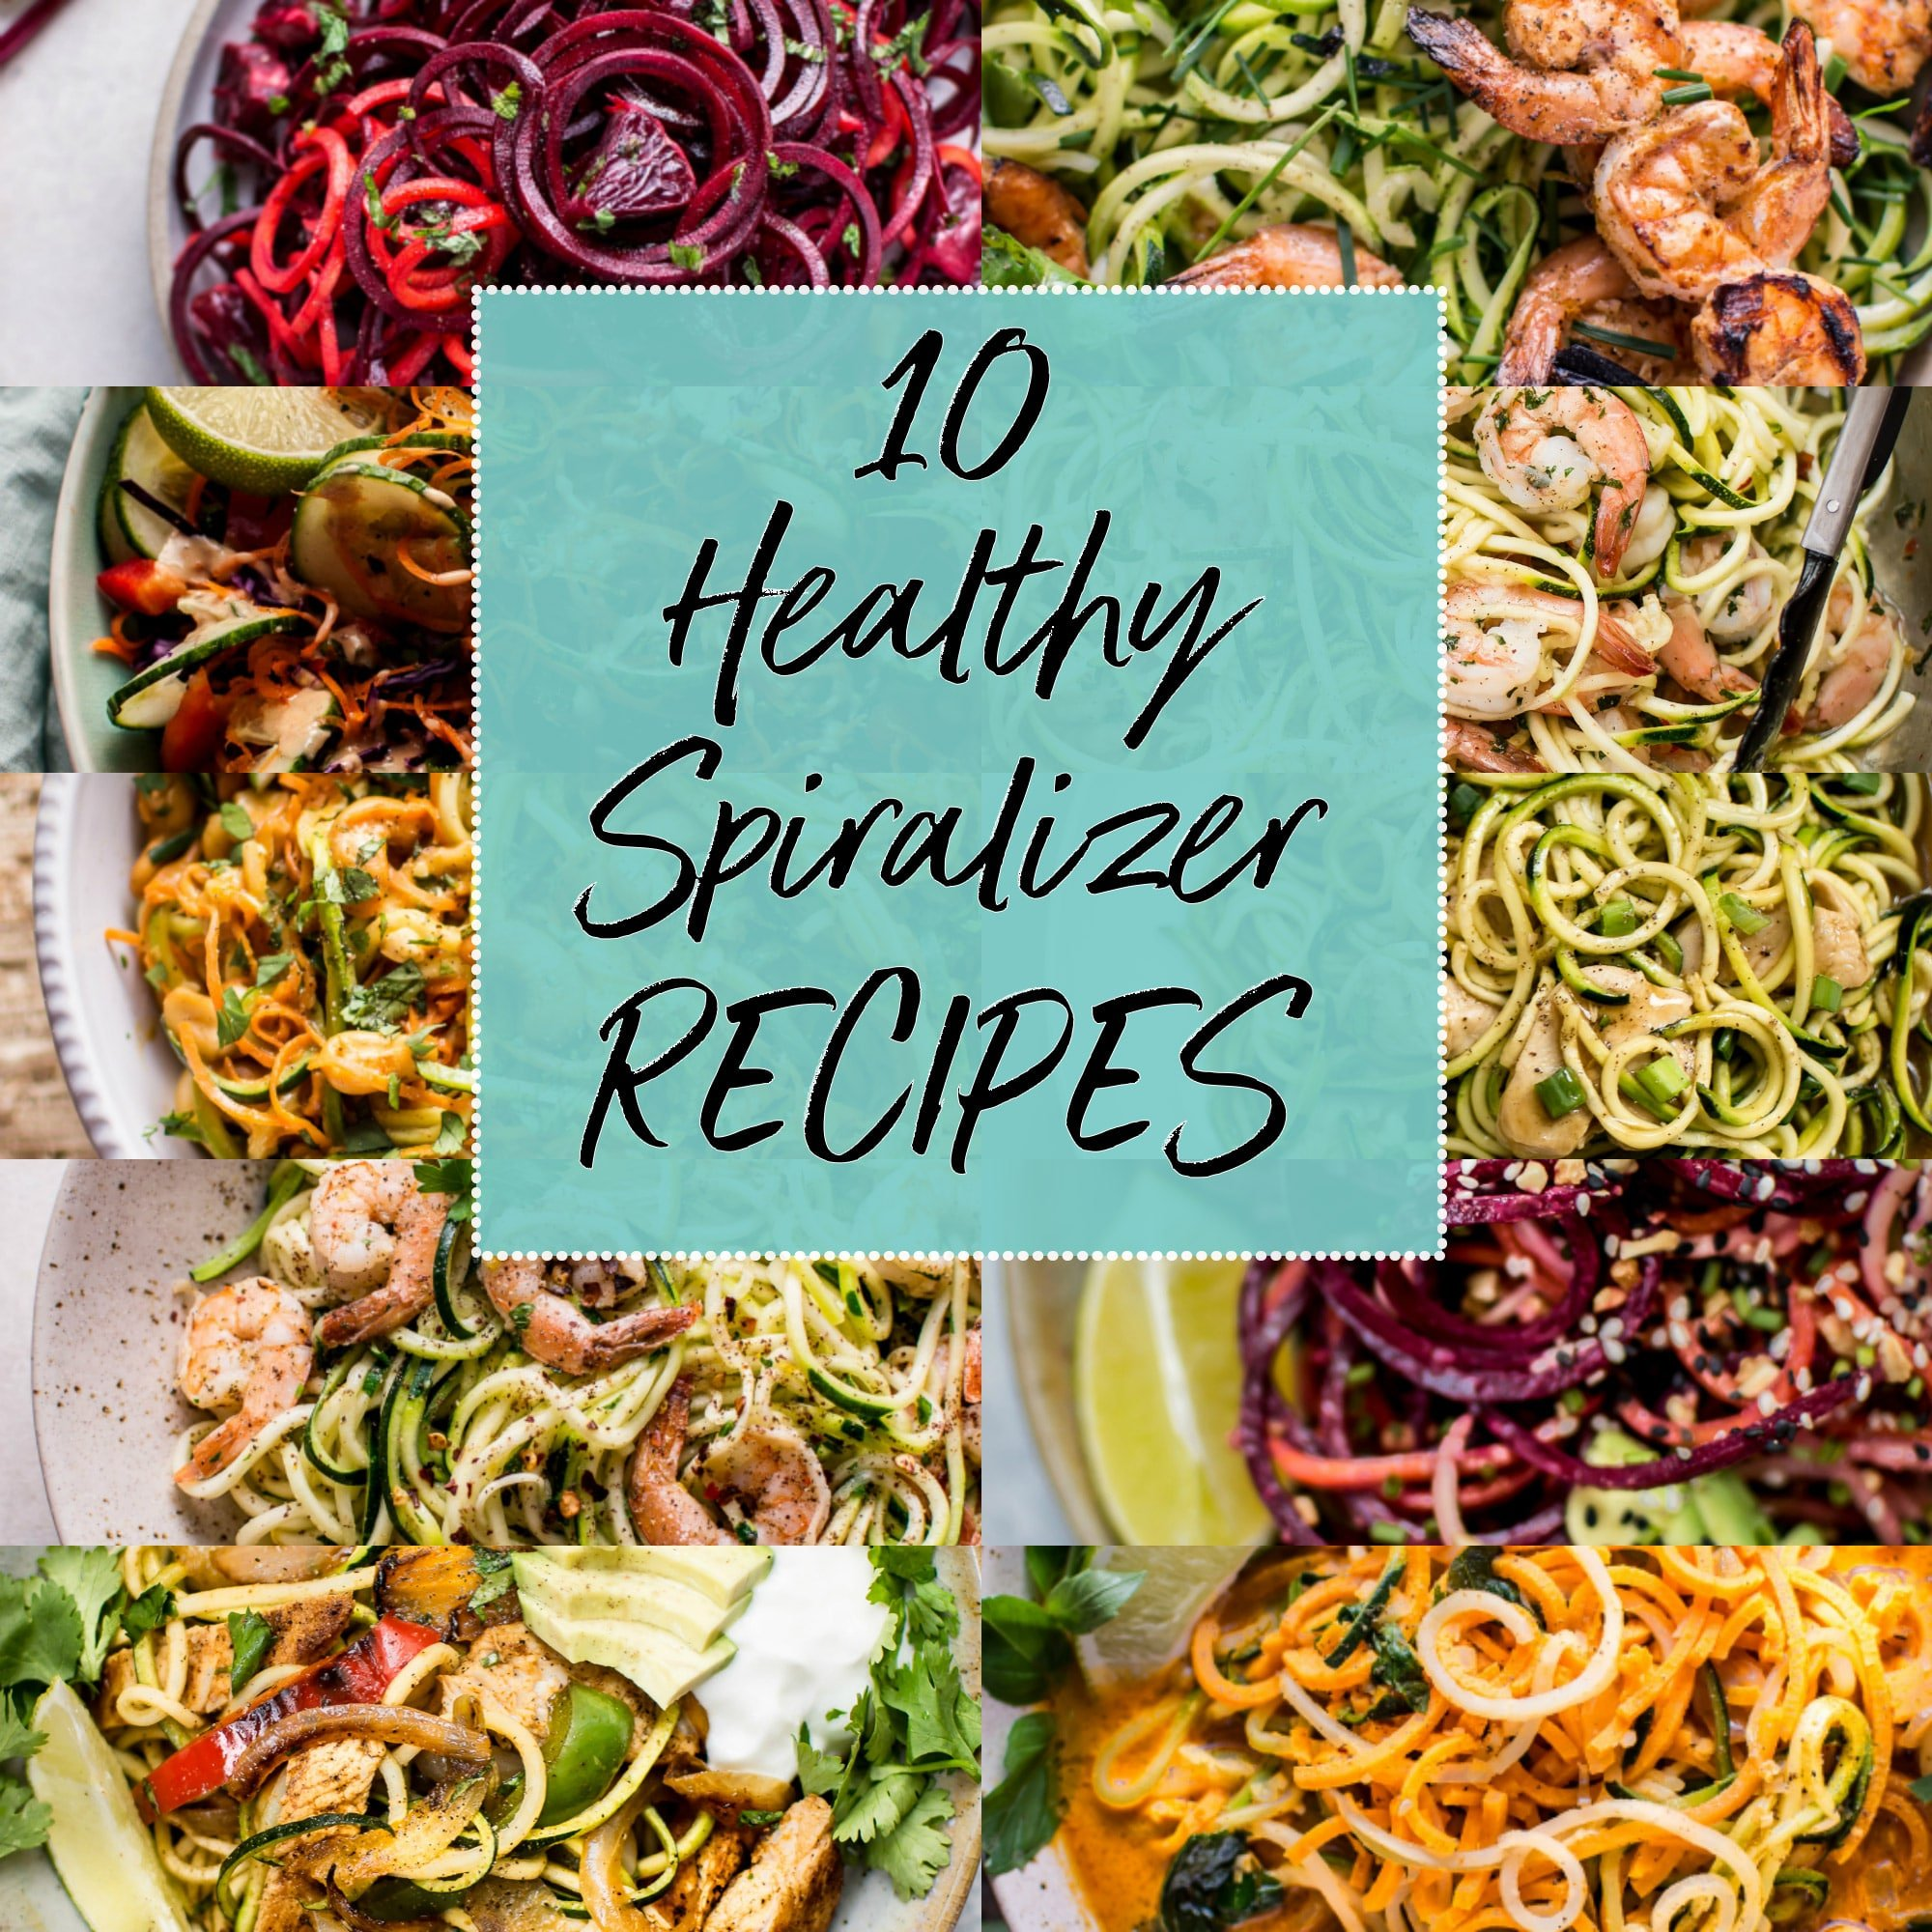 These 10 healthy spiralizer recipes are easy, delicious, low-carb, and simple to make. You just need a spiralizer and you're on your way!